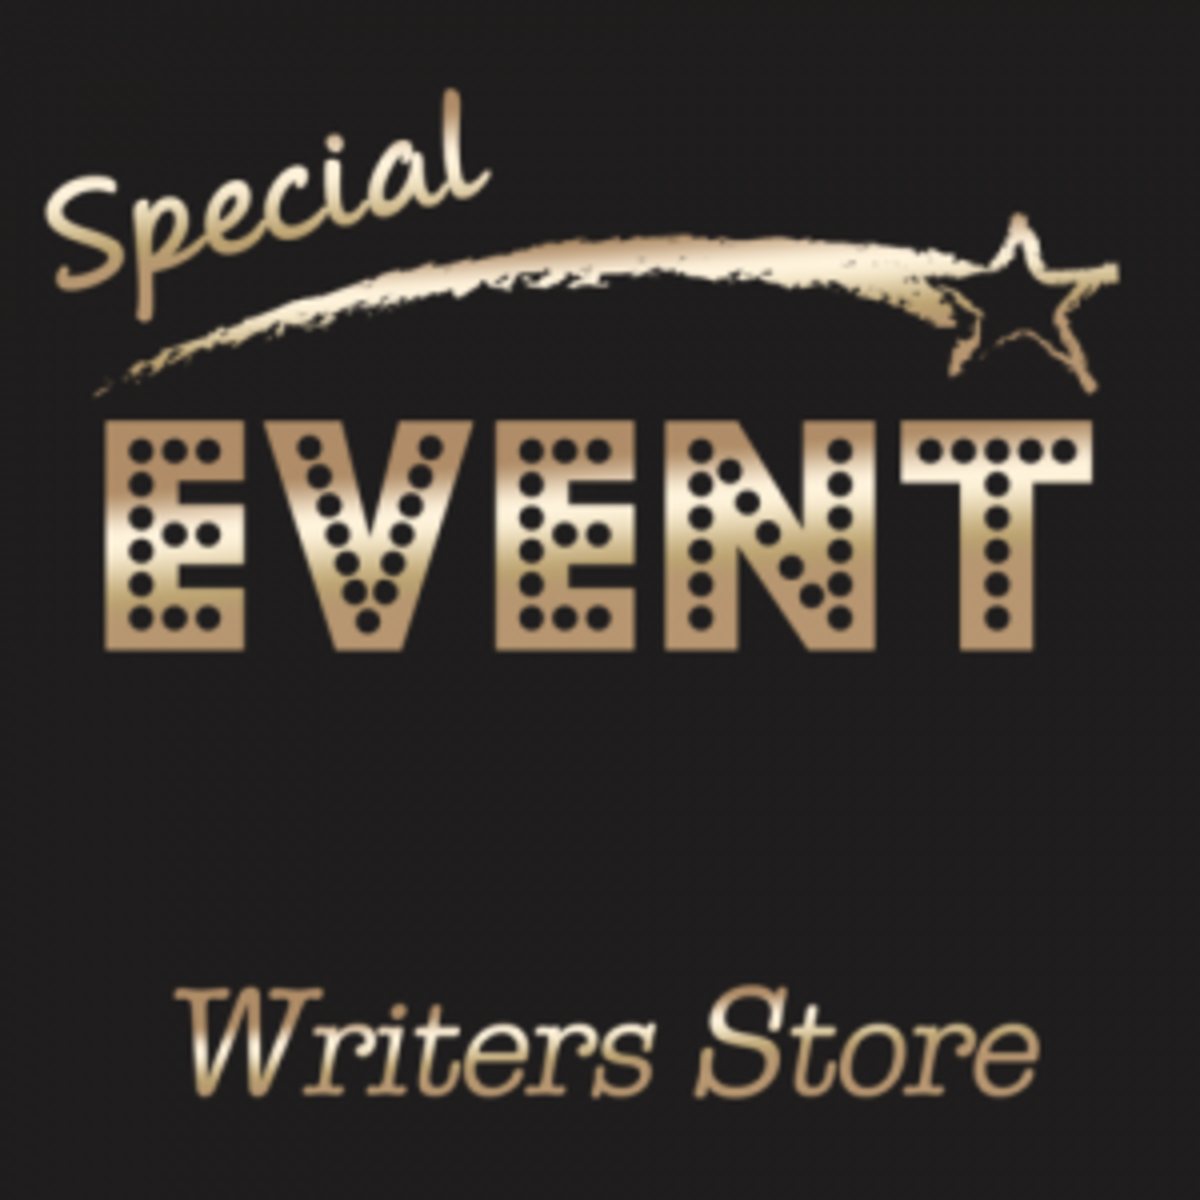 special-event-writers-store-2_medium